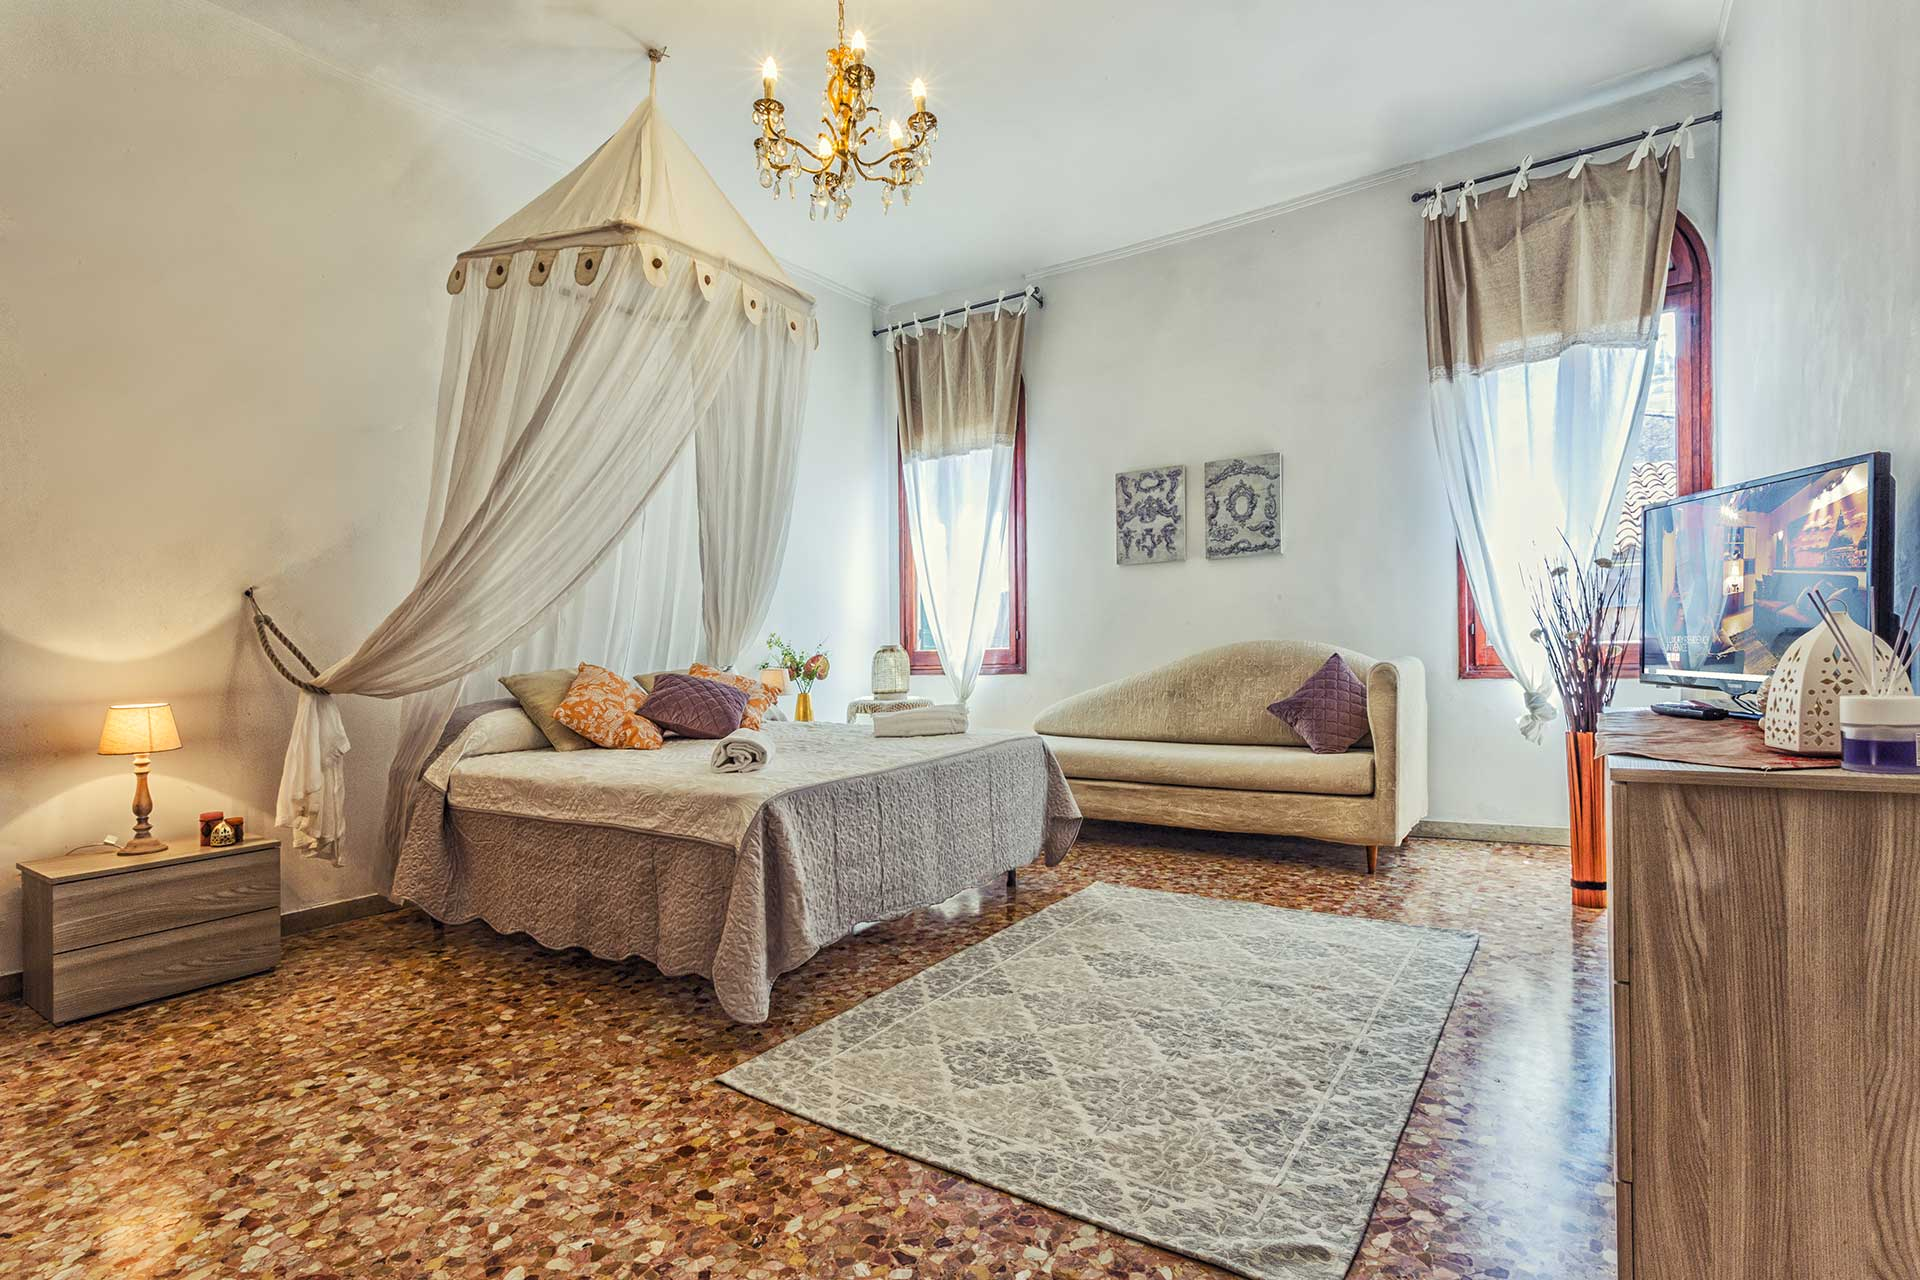 Rigoletto - Venice Dream House Apartments